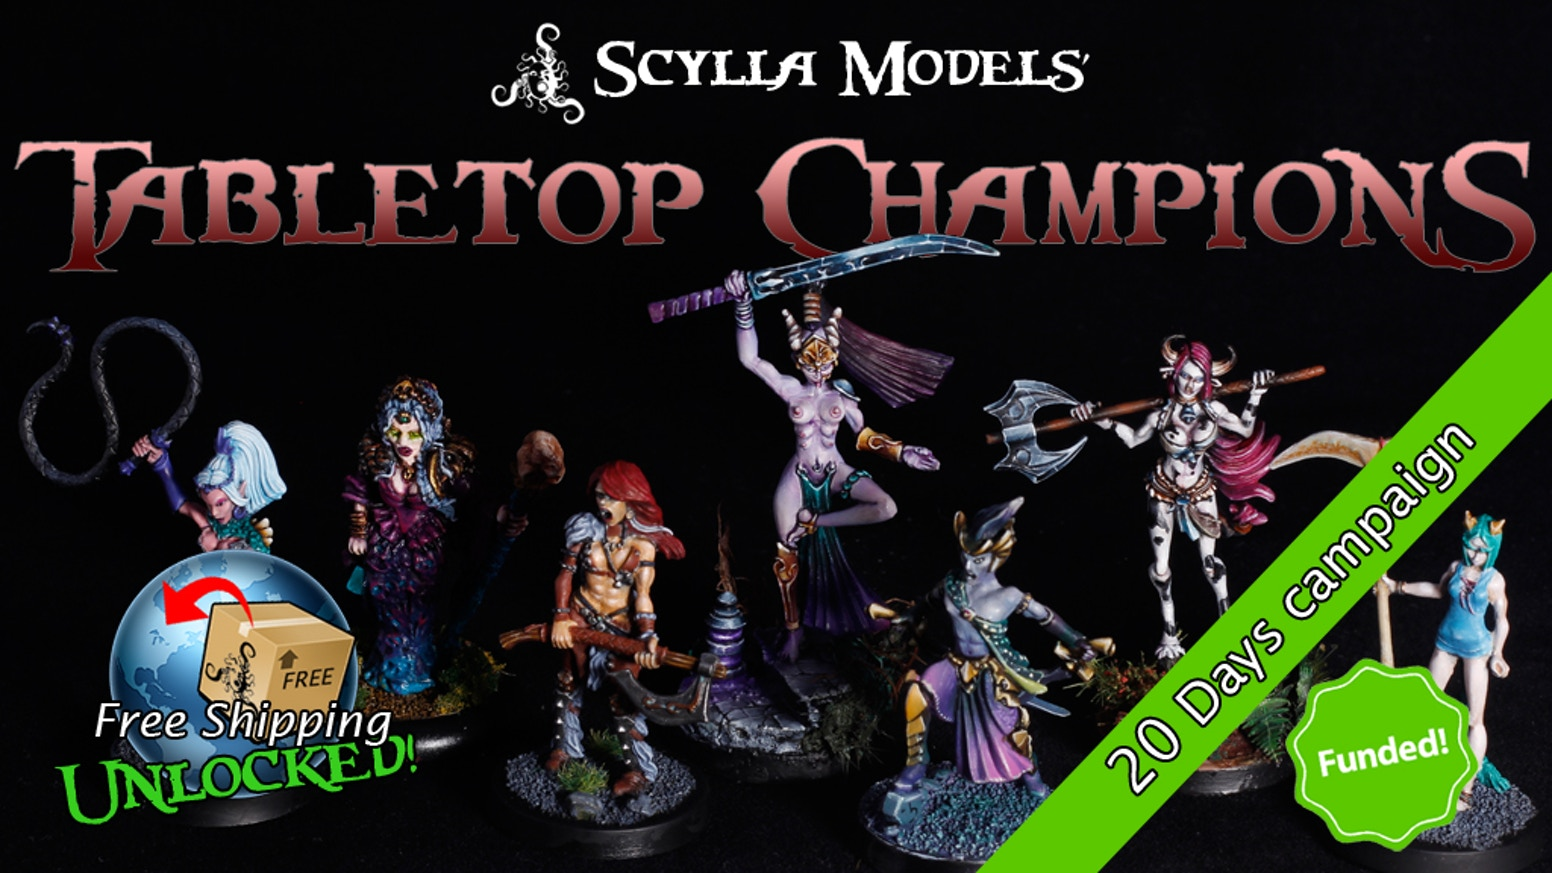 Scylla Models launches a fantasy miniature line to play as heroes (or foes) in yours roleplaying, tabletops, skirmishes and wargames.